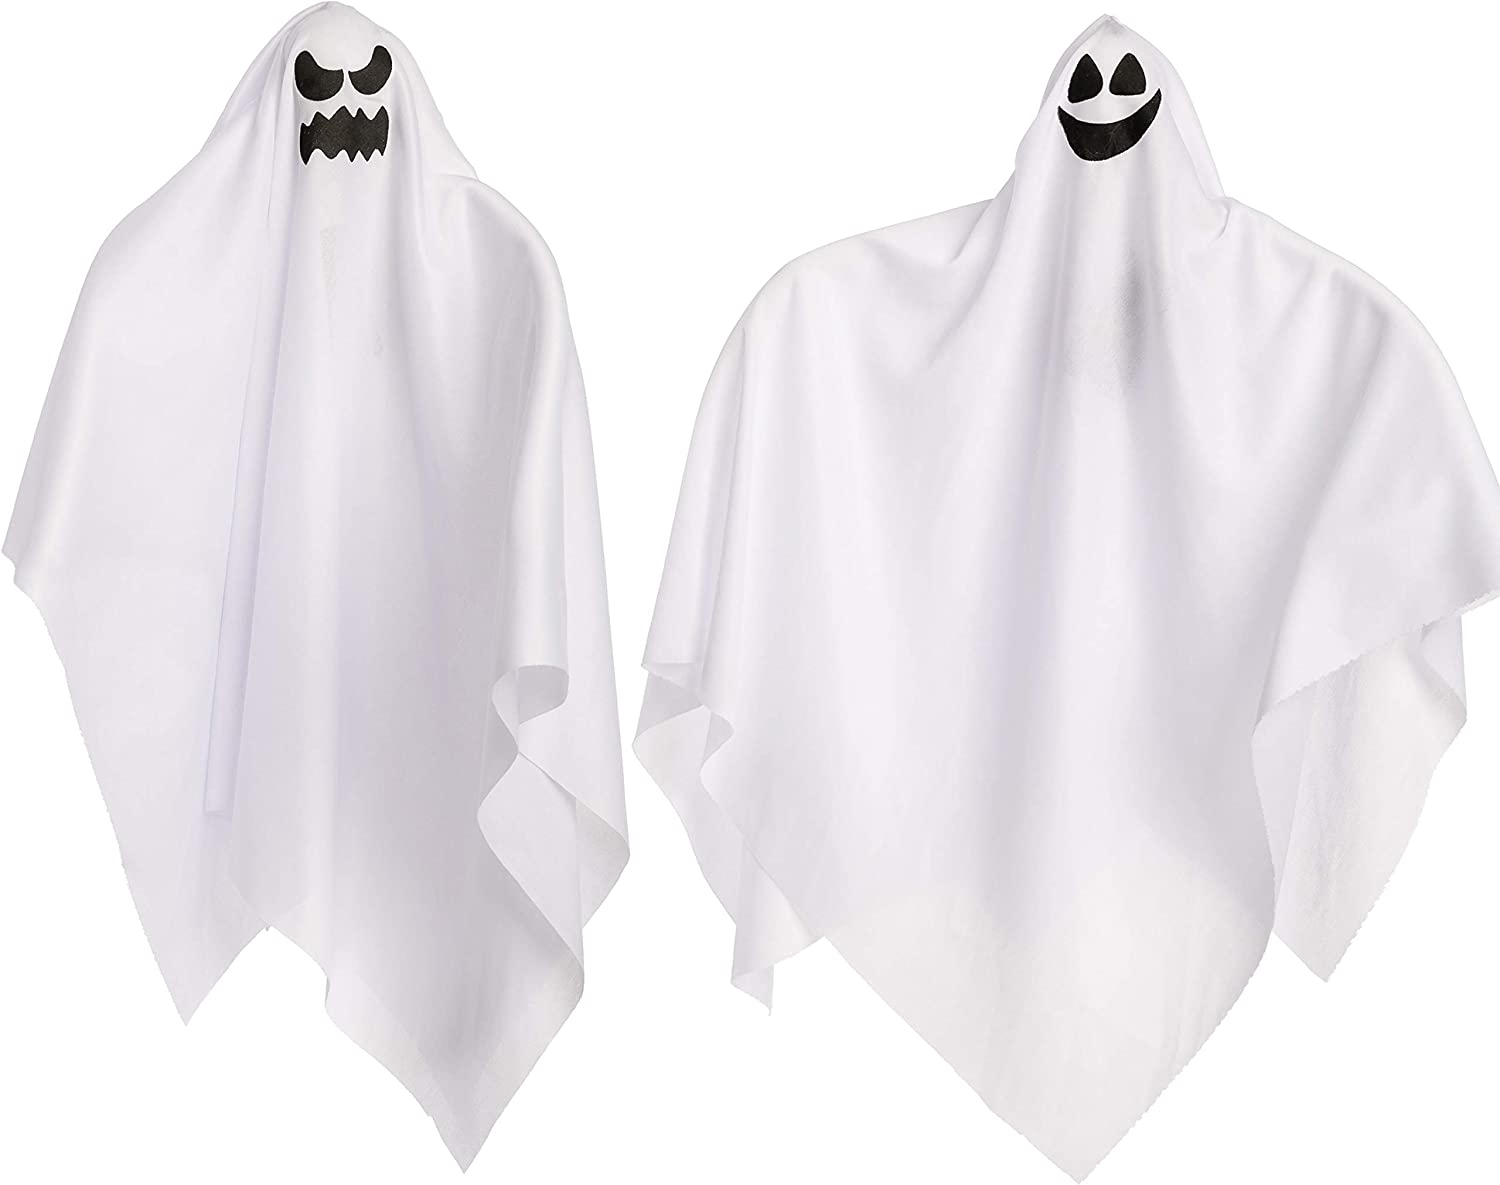 """Light-Up Halloween Hanging Ghost (2 Pack), 27.5"""" Cute Flying Ghosts for Front Yard Patio Lawn Garden Party Décor, Halloween Party Decoration and Holiday Decorations"""